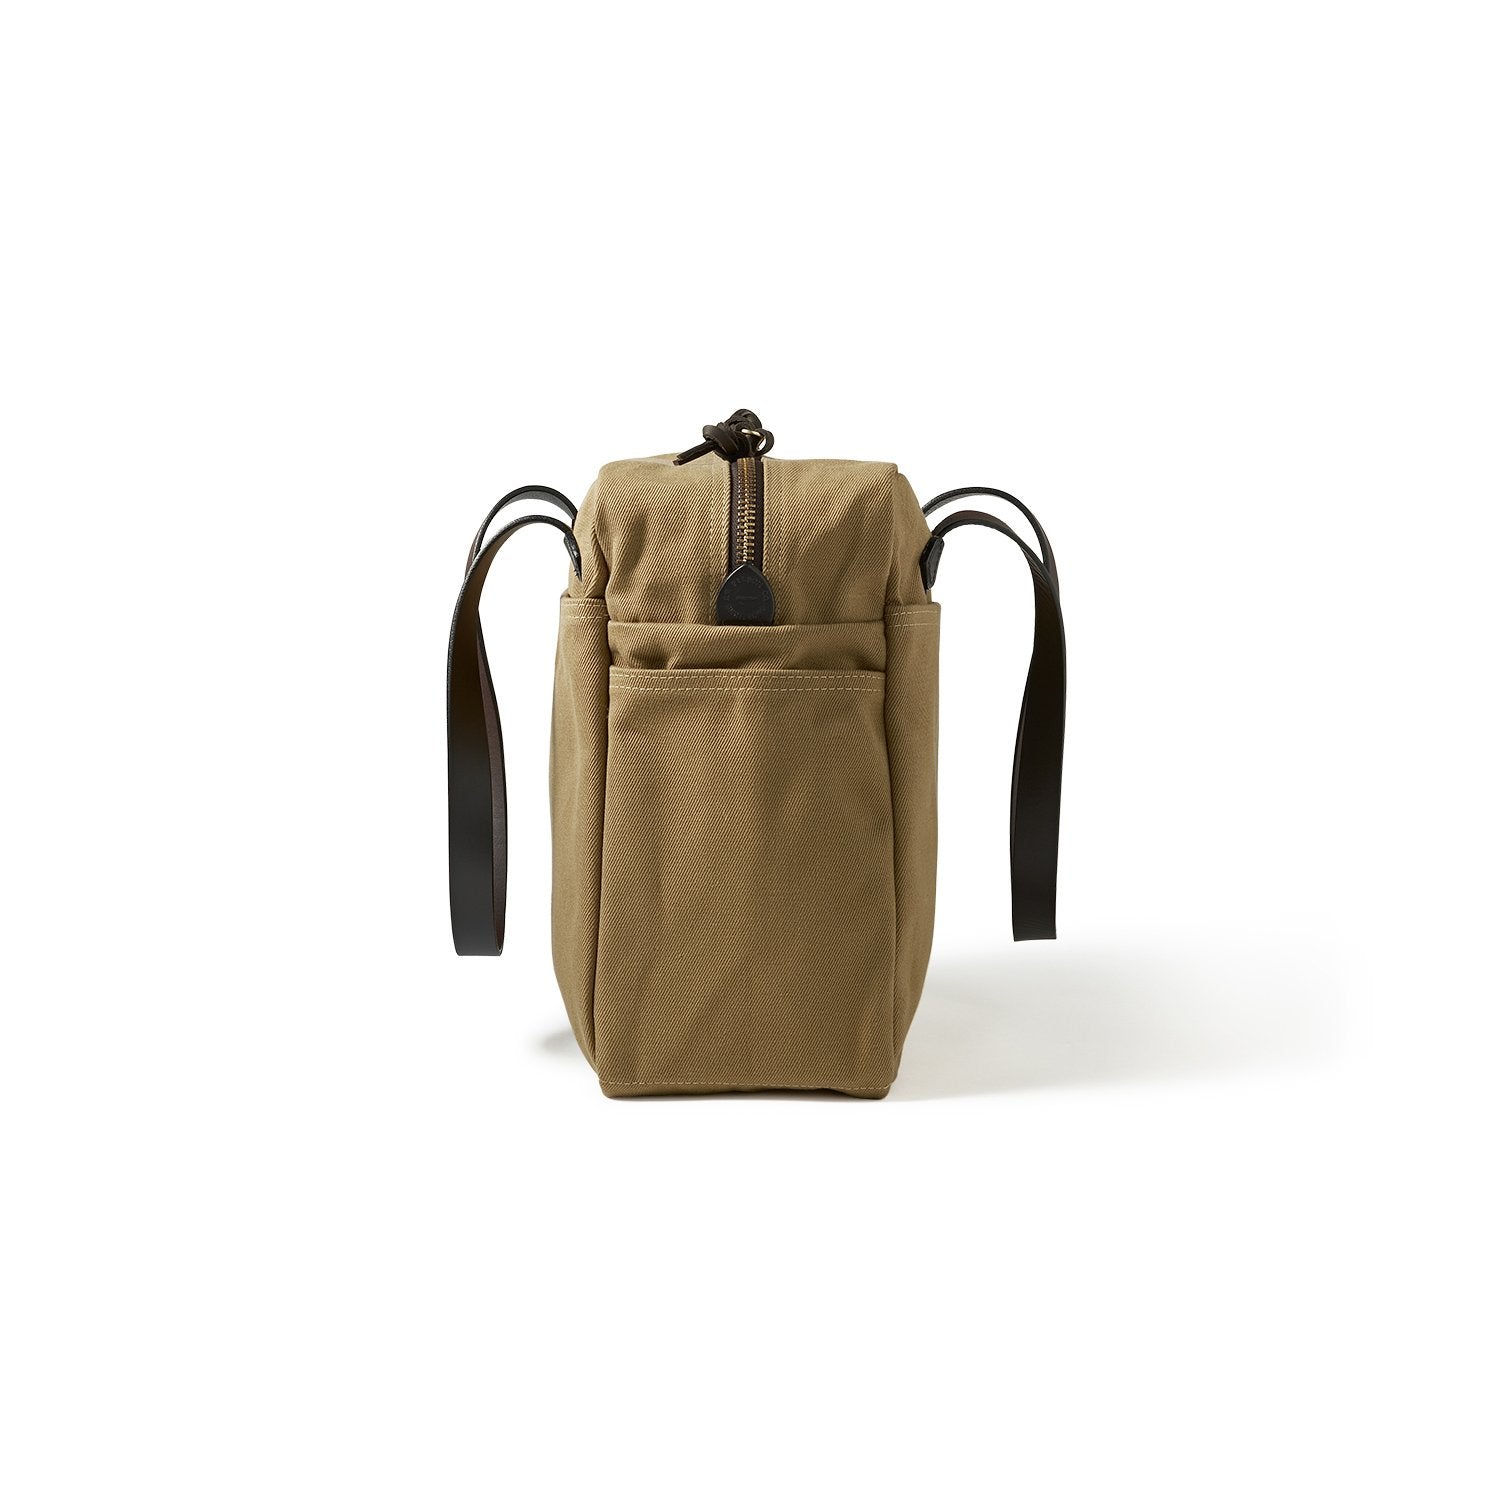 Filson-Twill-Tote-Bag-with-Zipper